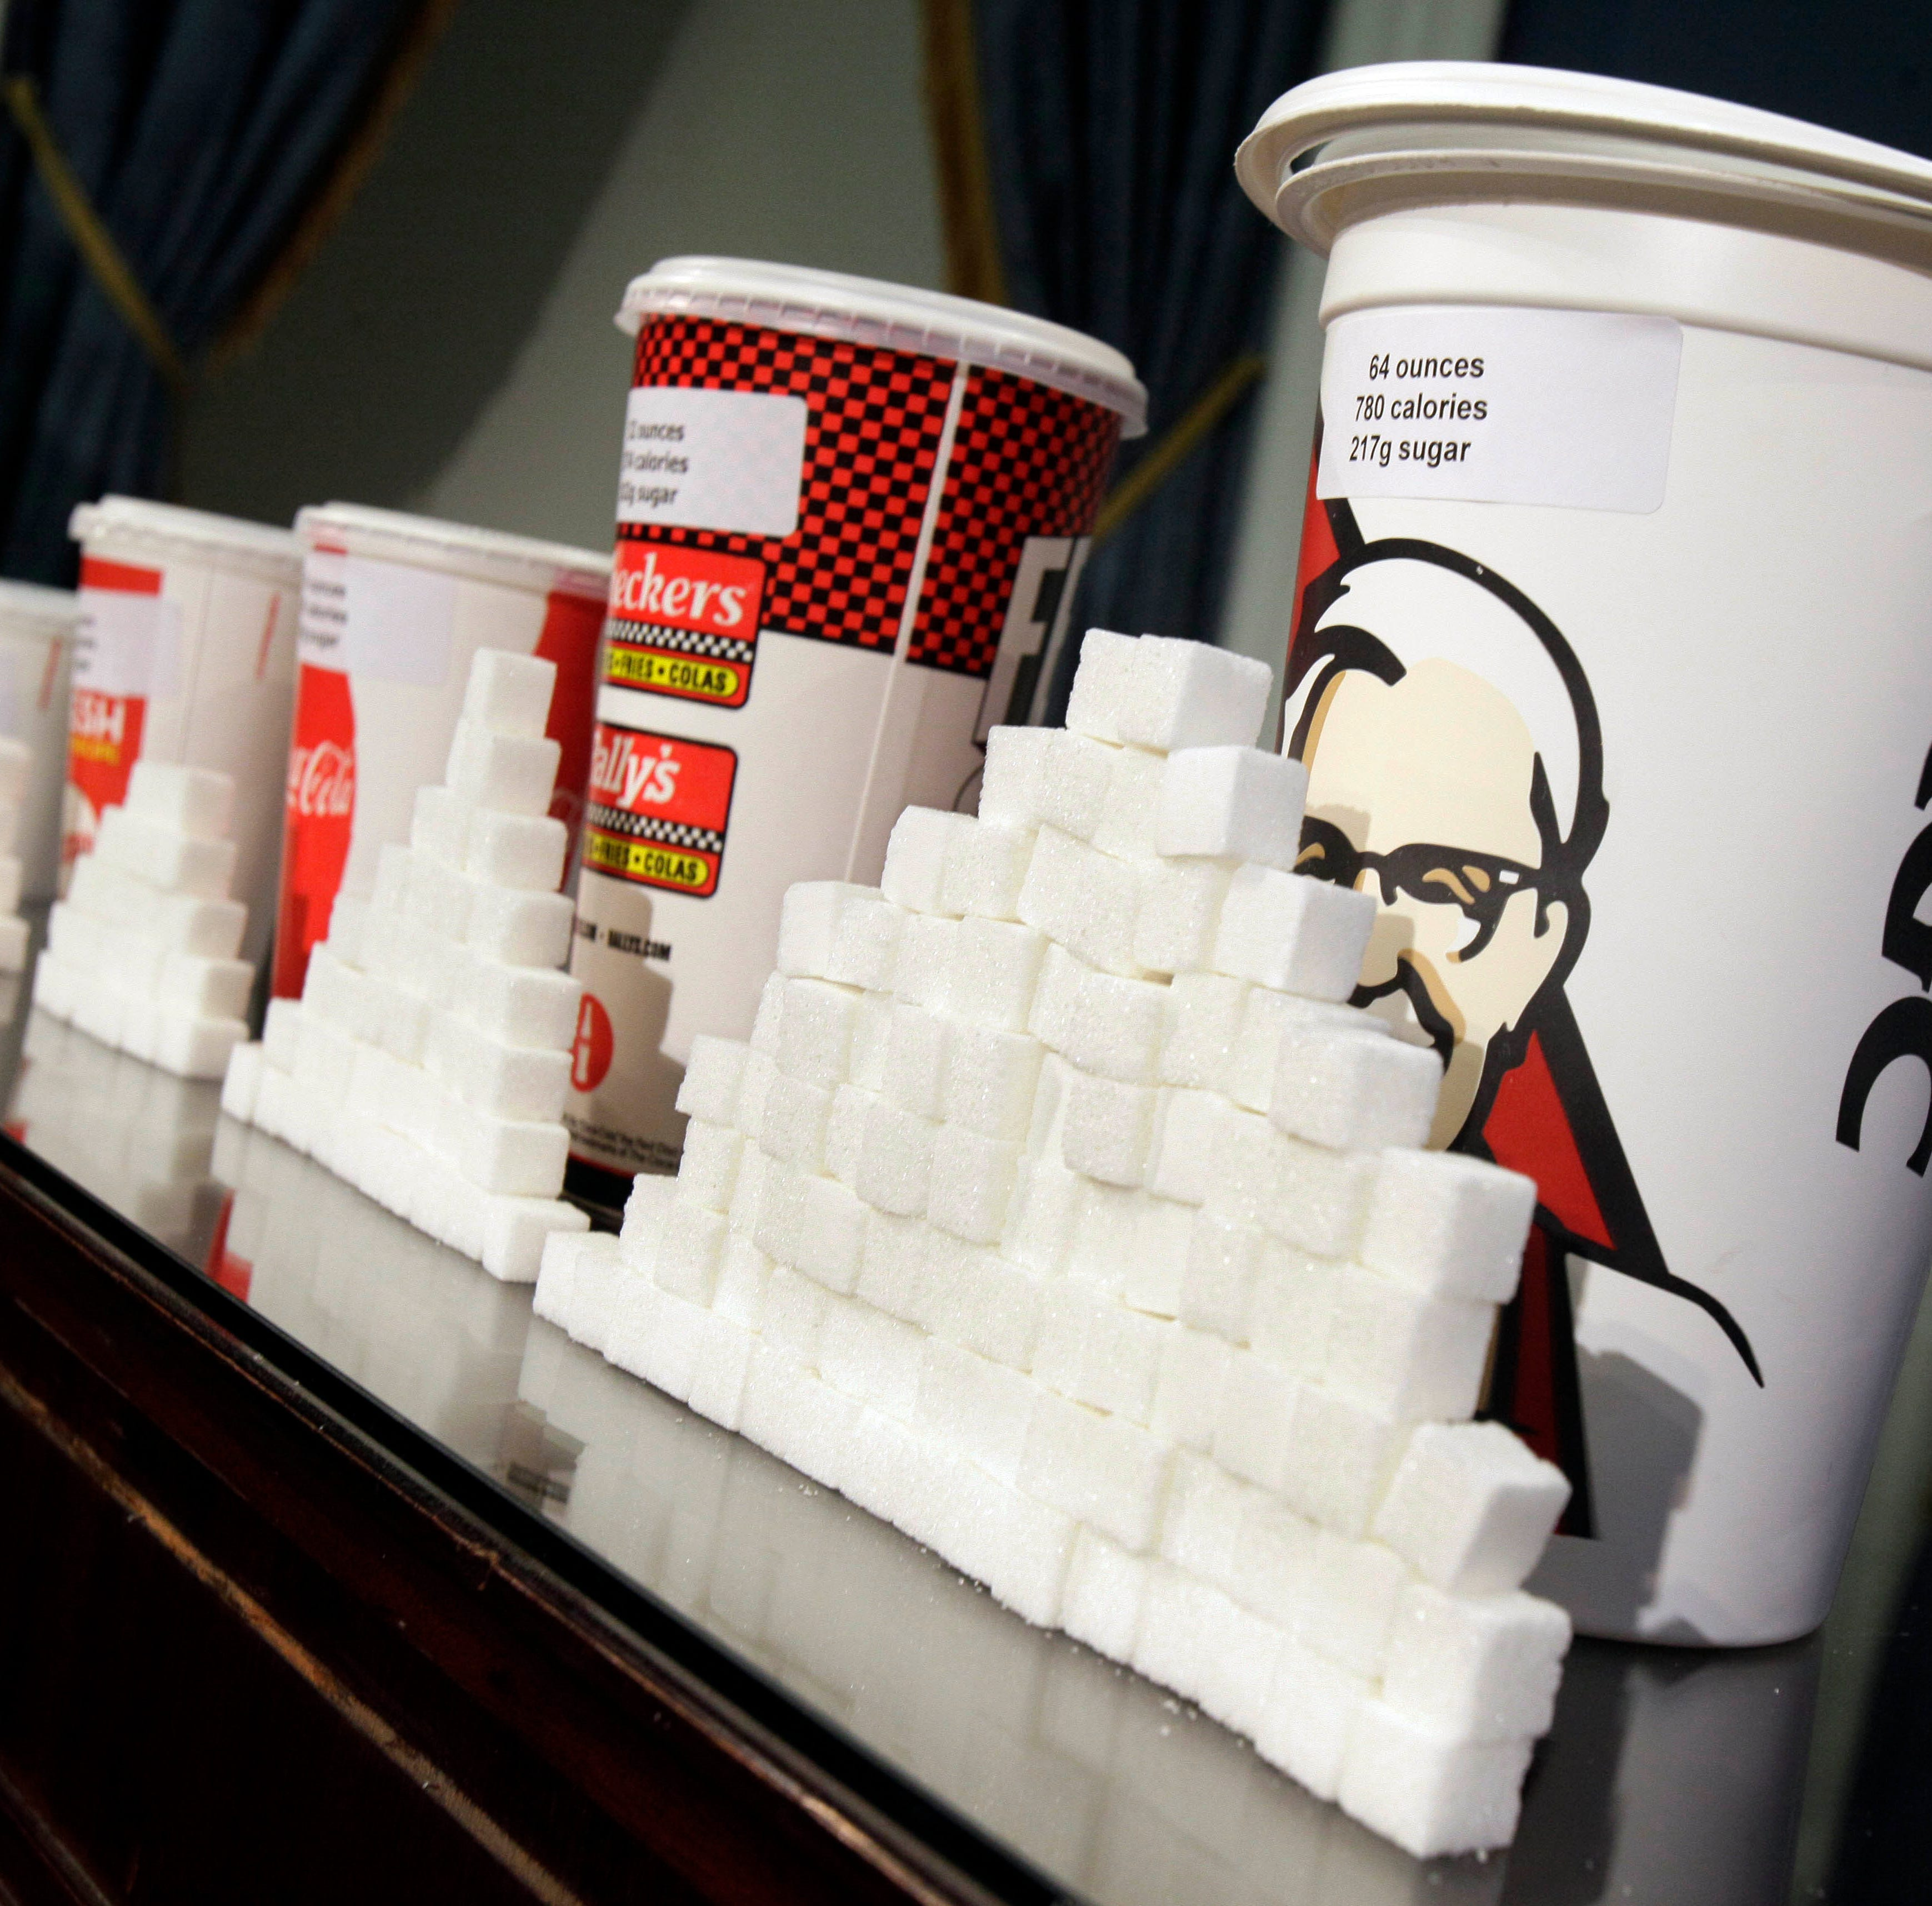 Why we're endorsing tax hikes and other ways to limit sugary drinks for kids